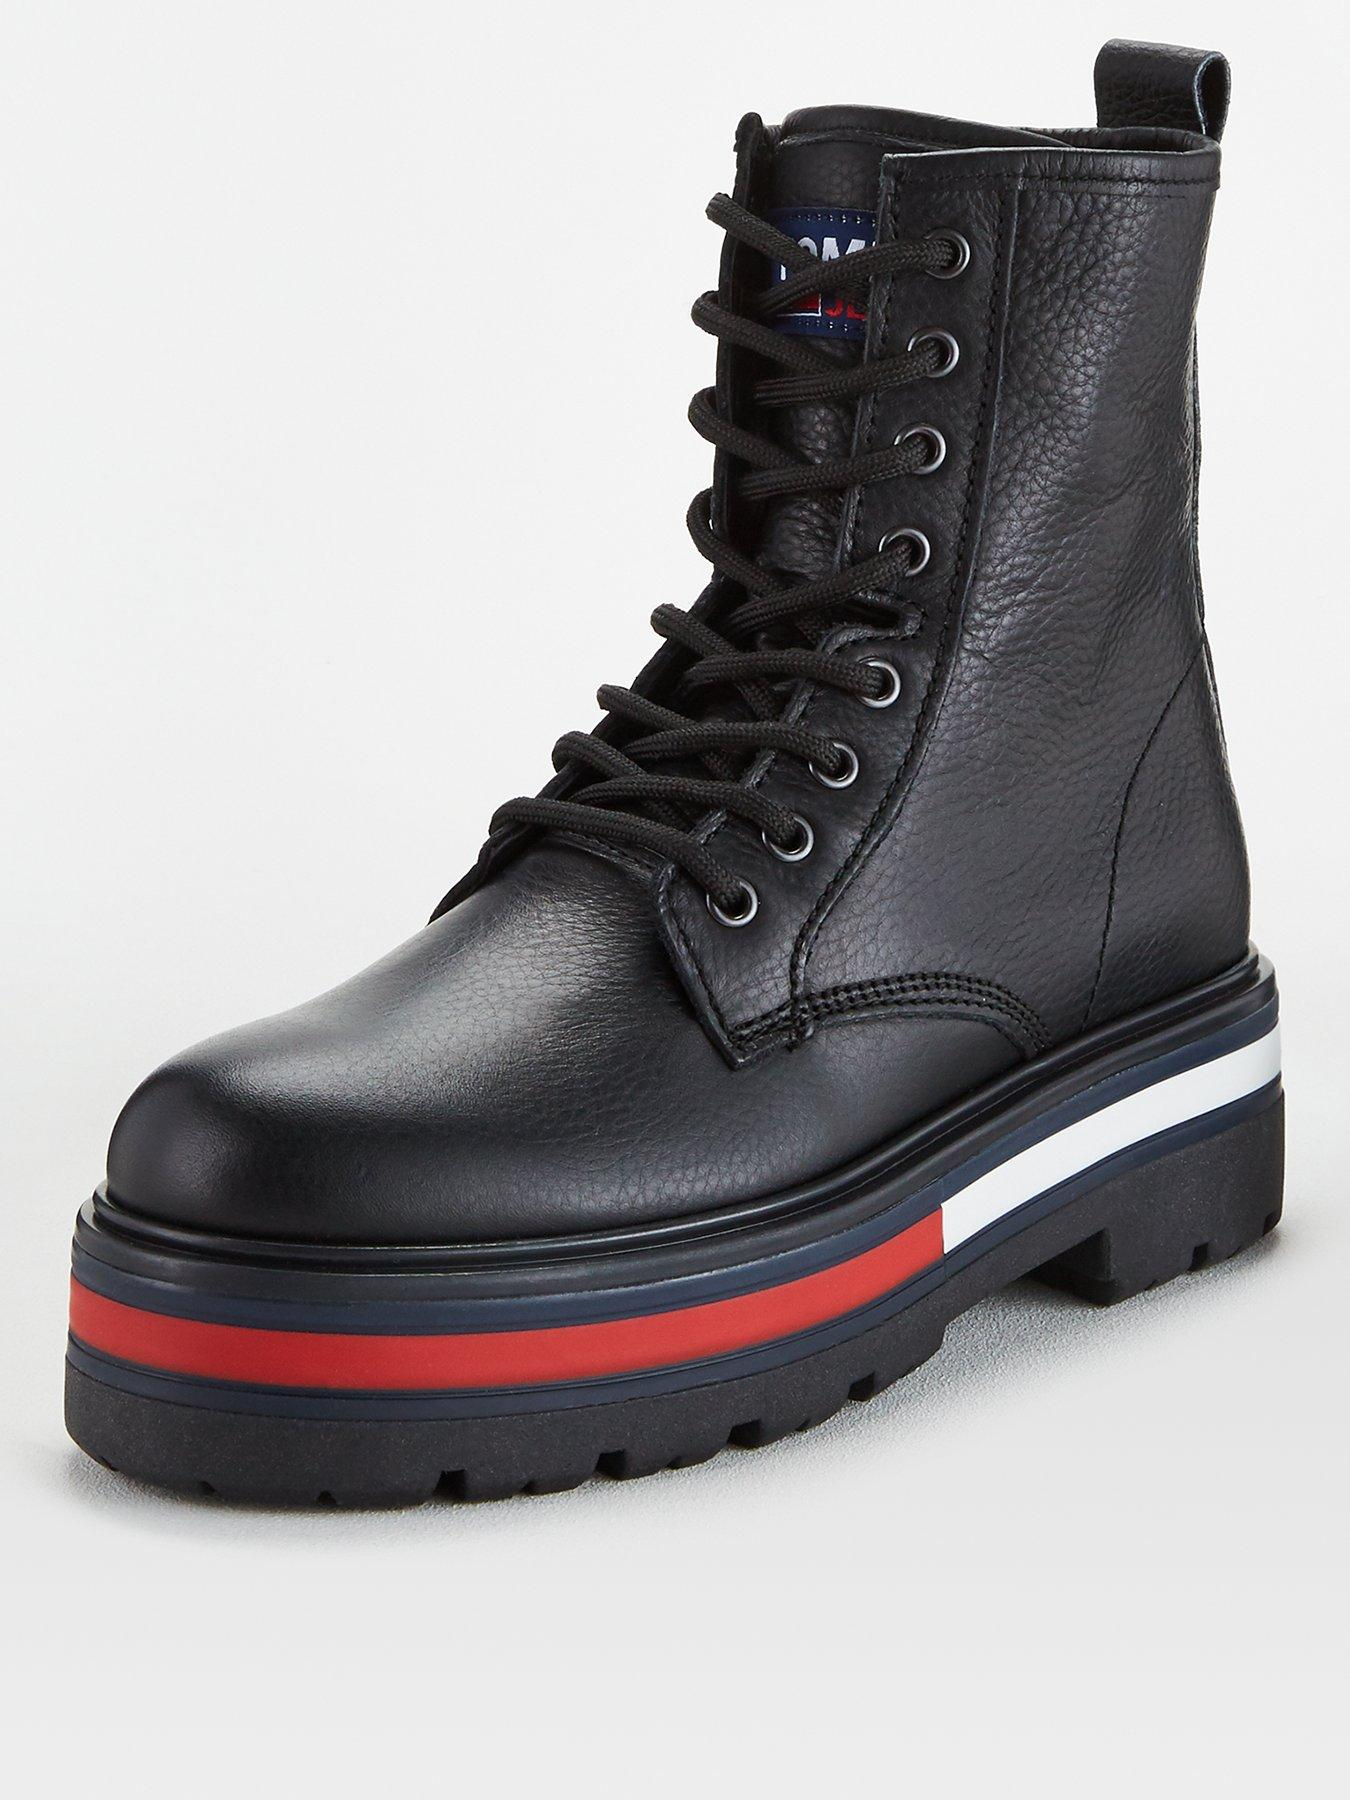 Tommy Hilfiger Rugged Classic Lace Up Flat Womens Black Casual Boots 4 UK